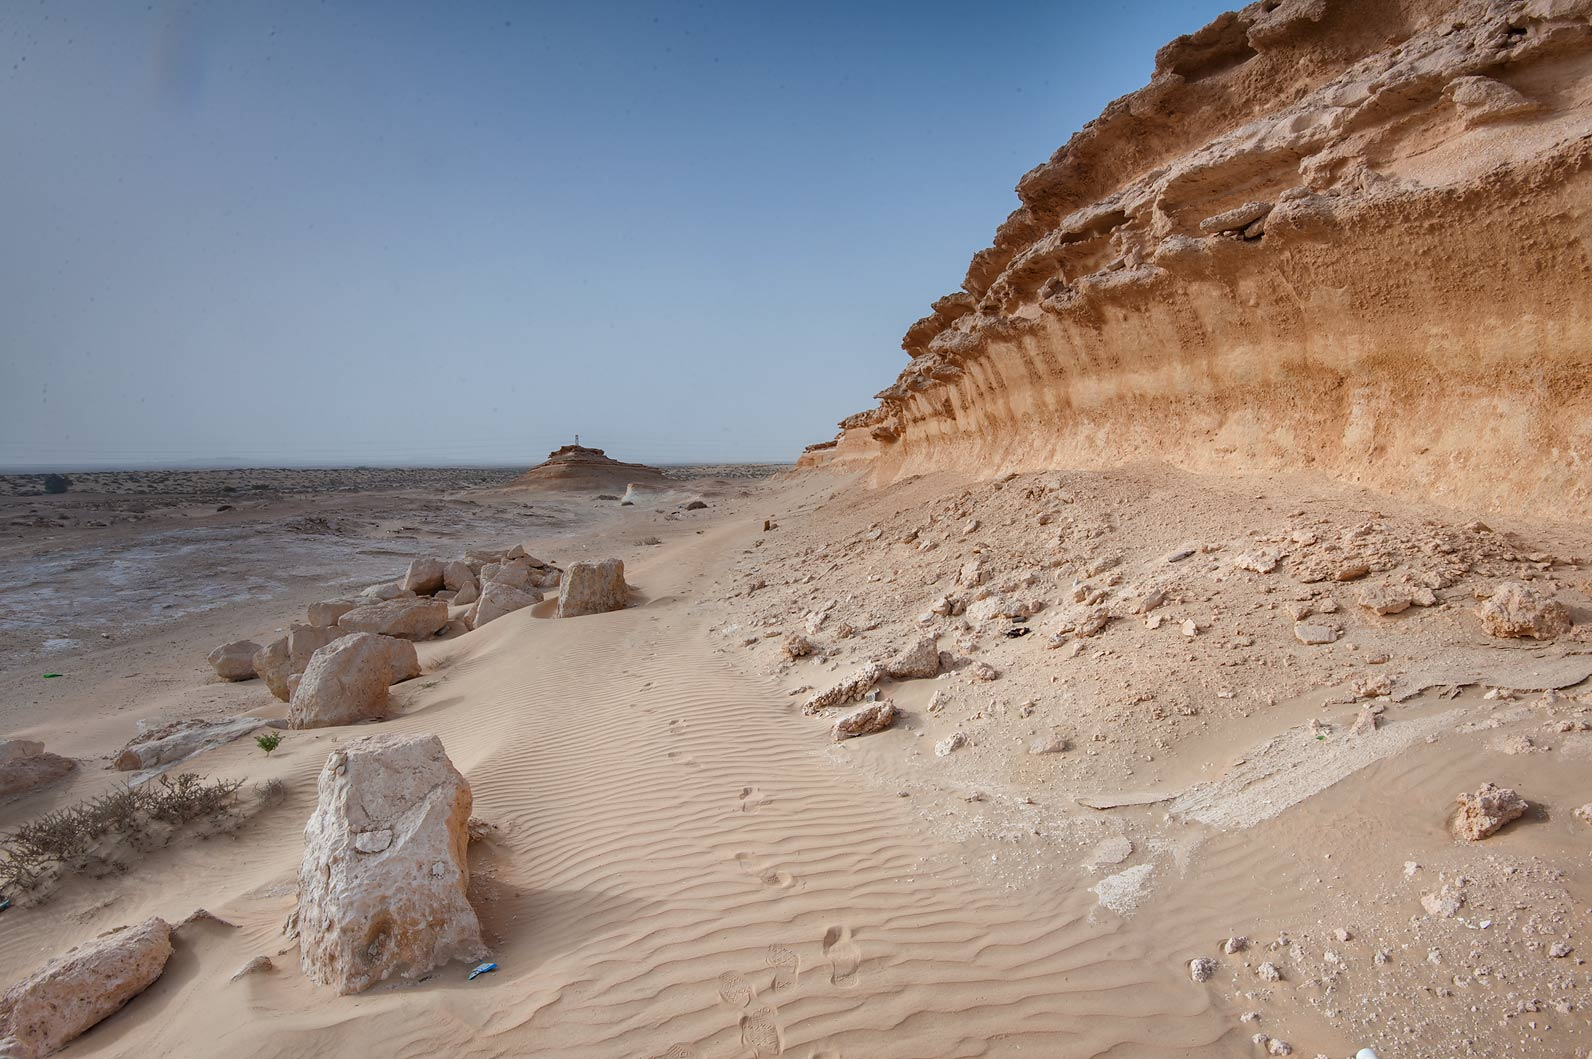 Small cliff near Salwa Rd. in area of Rawdat Ekdaim. Southern Qatar